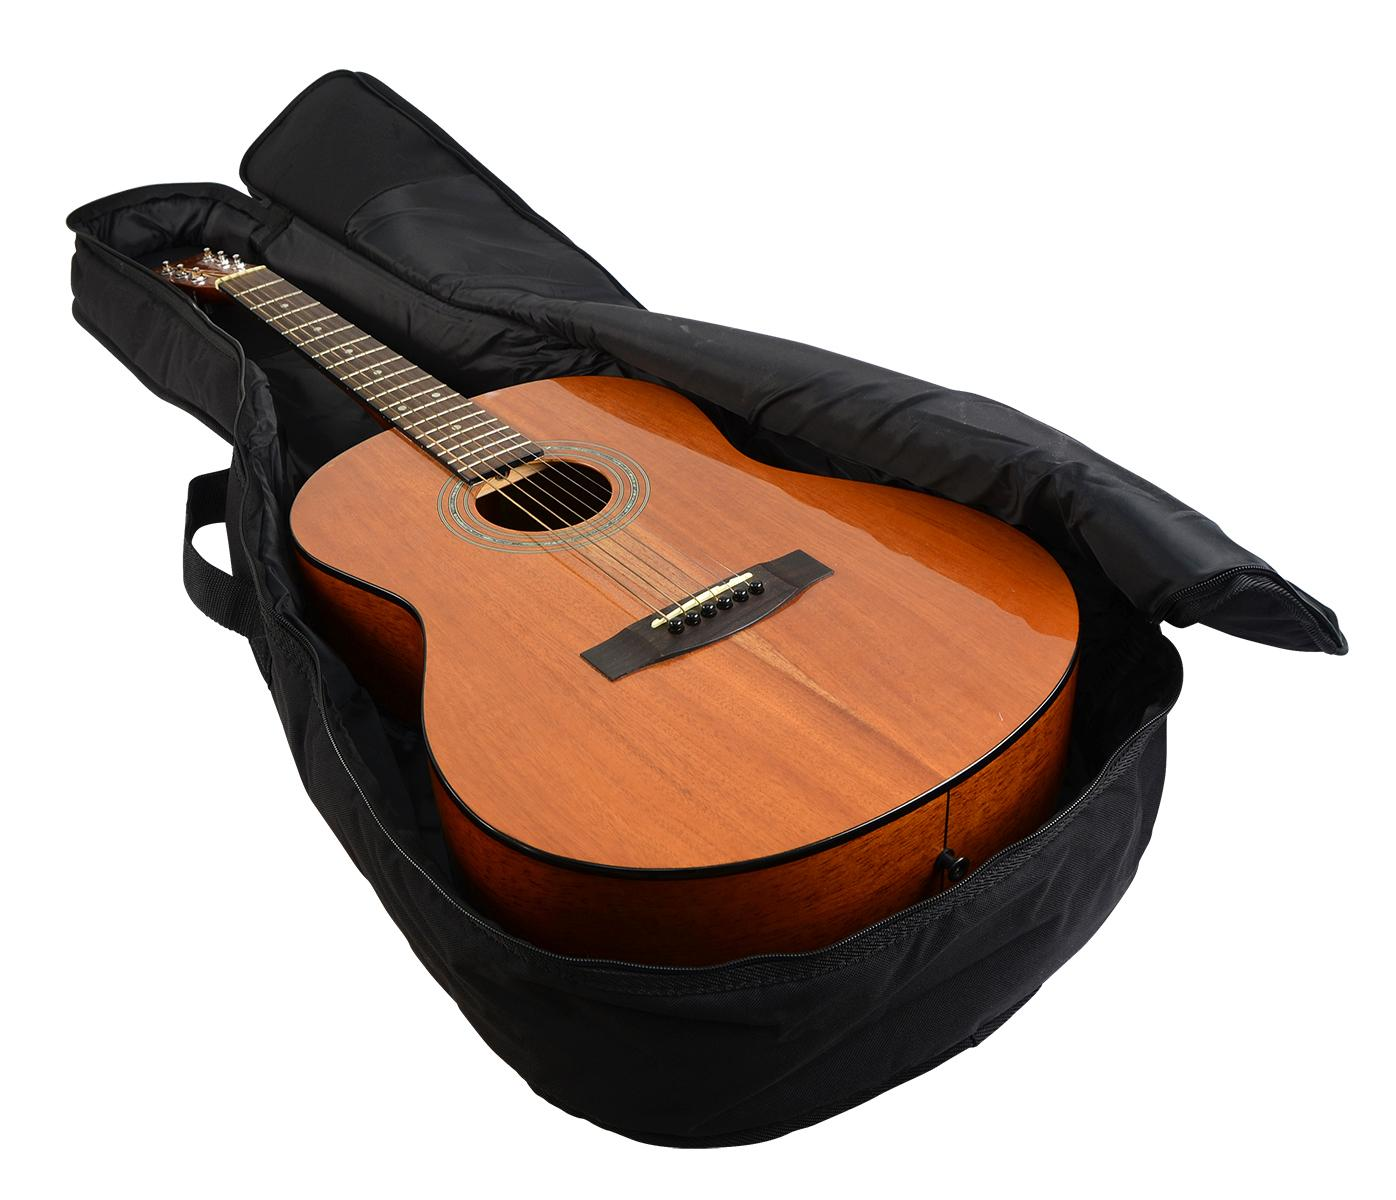 gator cases gbe mini acou mini acoustic guitar gig bag musical instruments. Black Bedroom Furniture Sets. Home Design Ideas